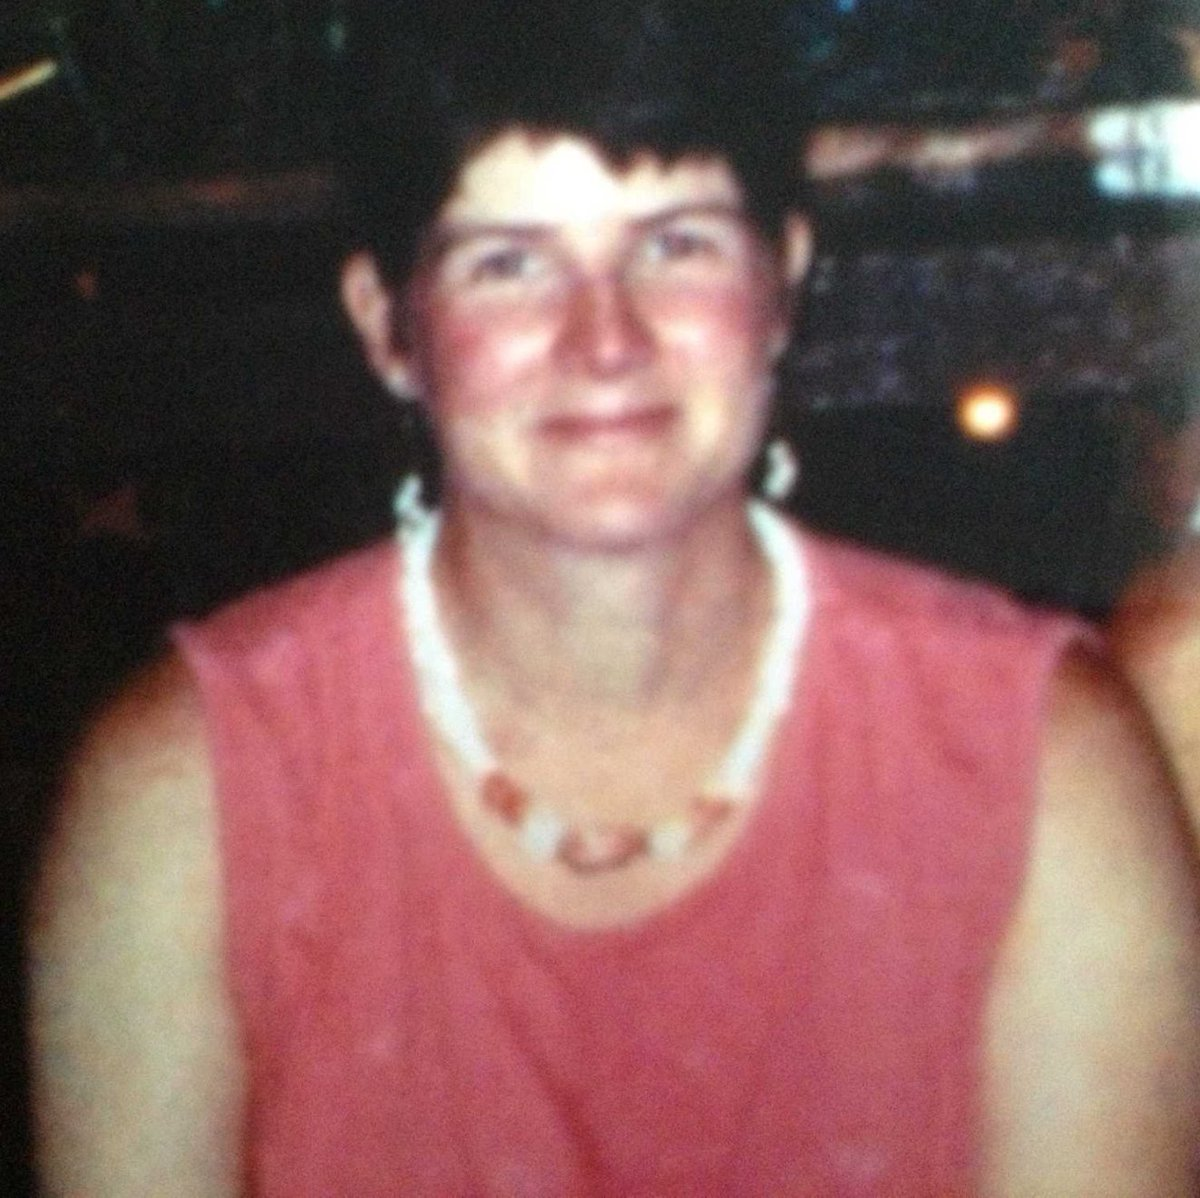 RT @teamtrace: Anne Marie Murphy, 52 https://t.co/FvQHYgPAJQ